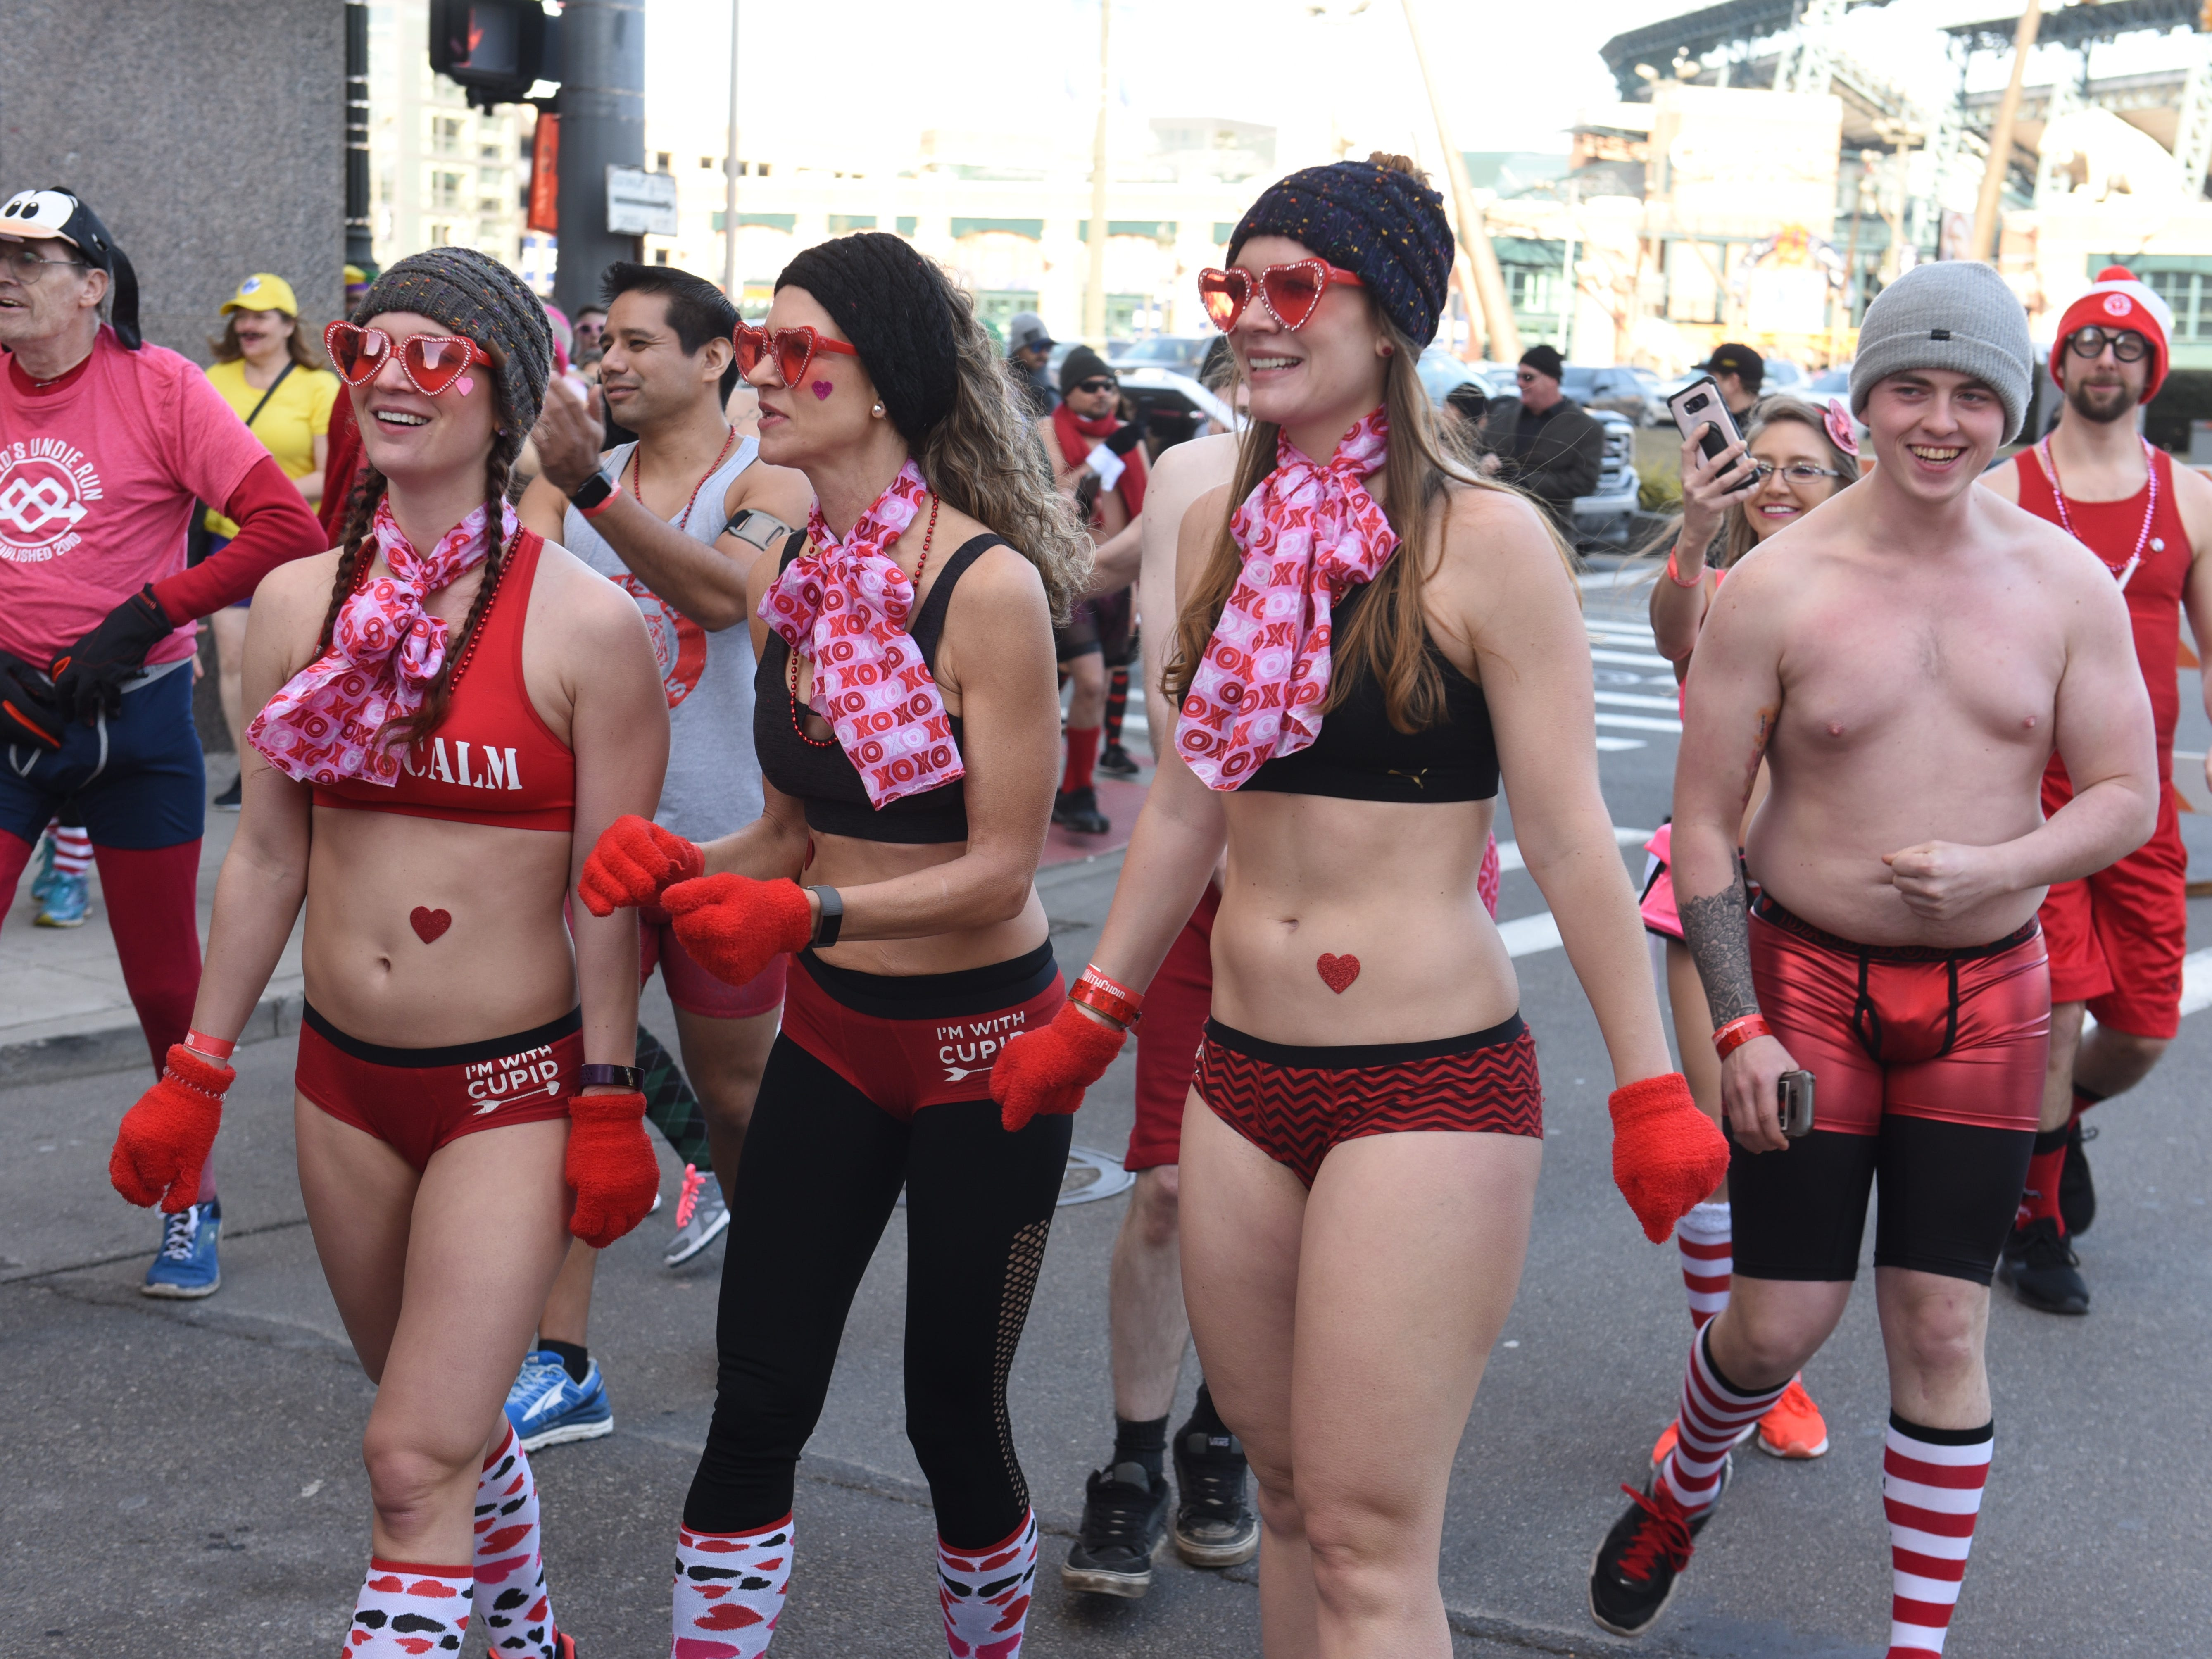 Participants brave the cold weather outside The Fillmore Detroit for Cupid's Undie Run, a fundraiser to find a cure for neurofibromatosis.